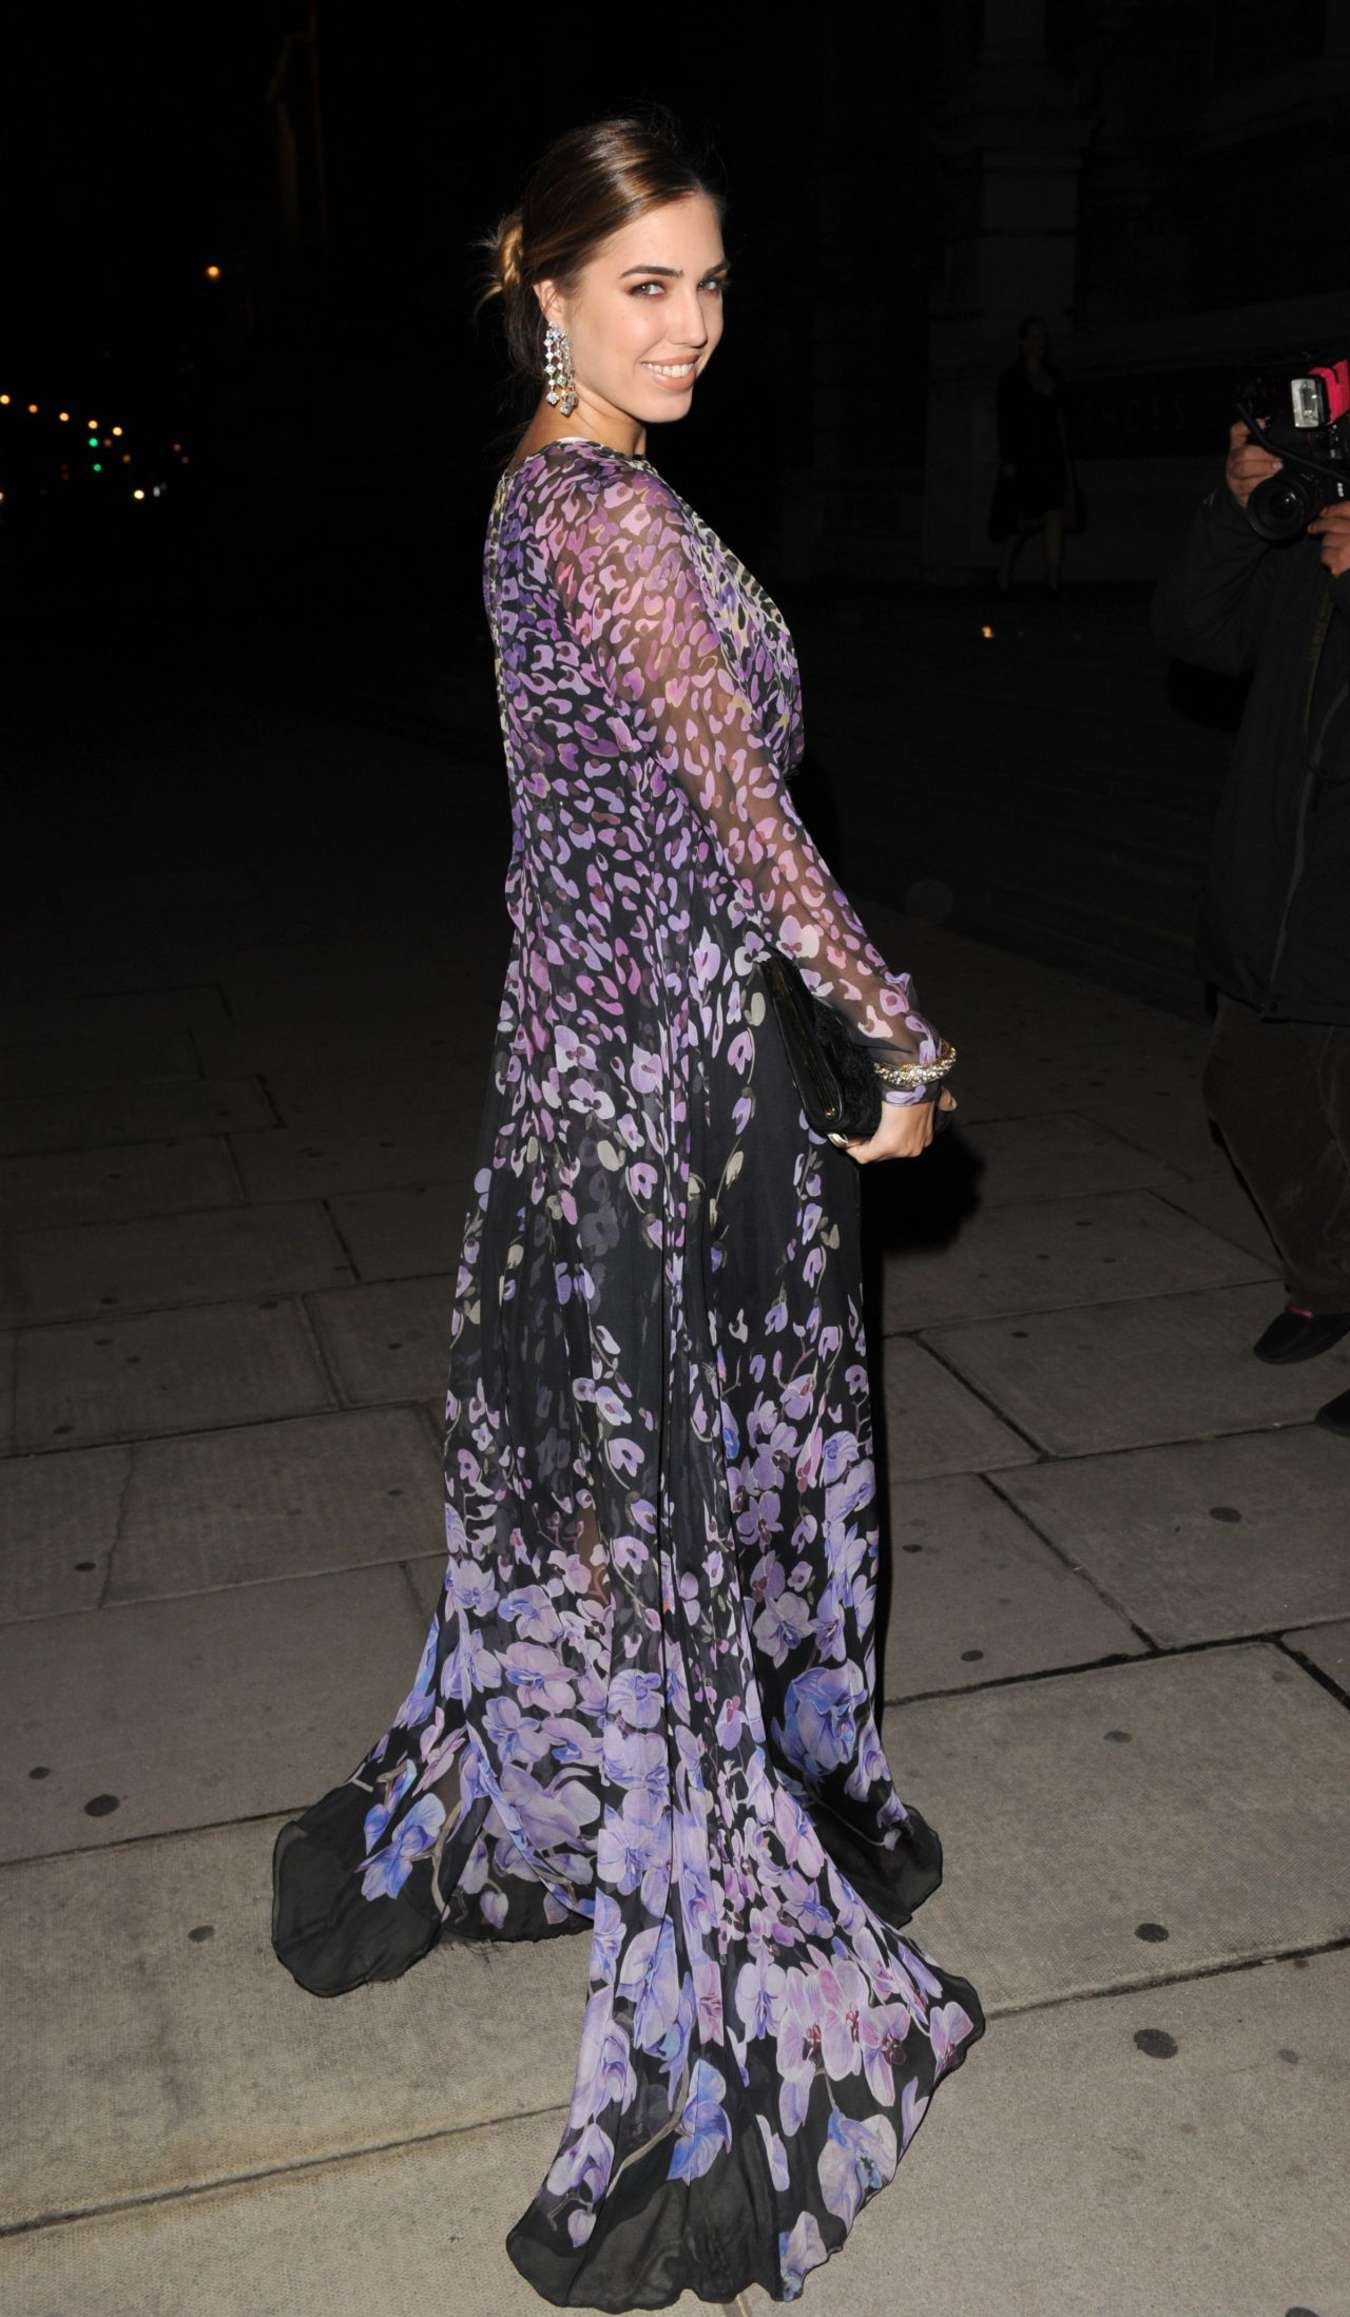 Amber Le Bon Tunnel Of Love Fundraiser at the Victoria Albert Museum in London